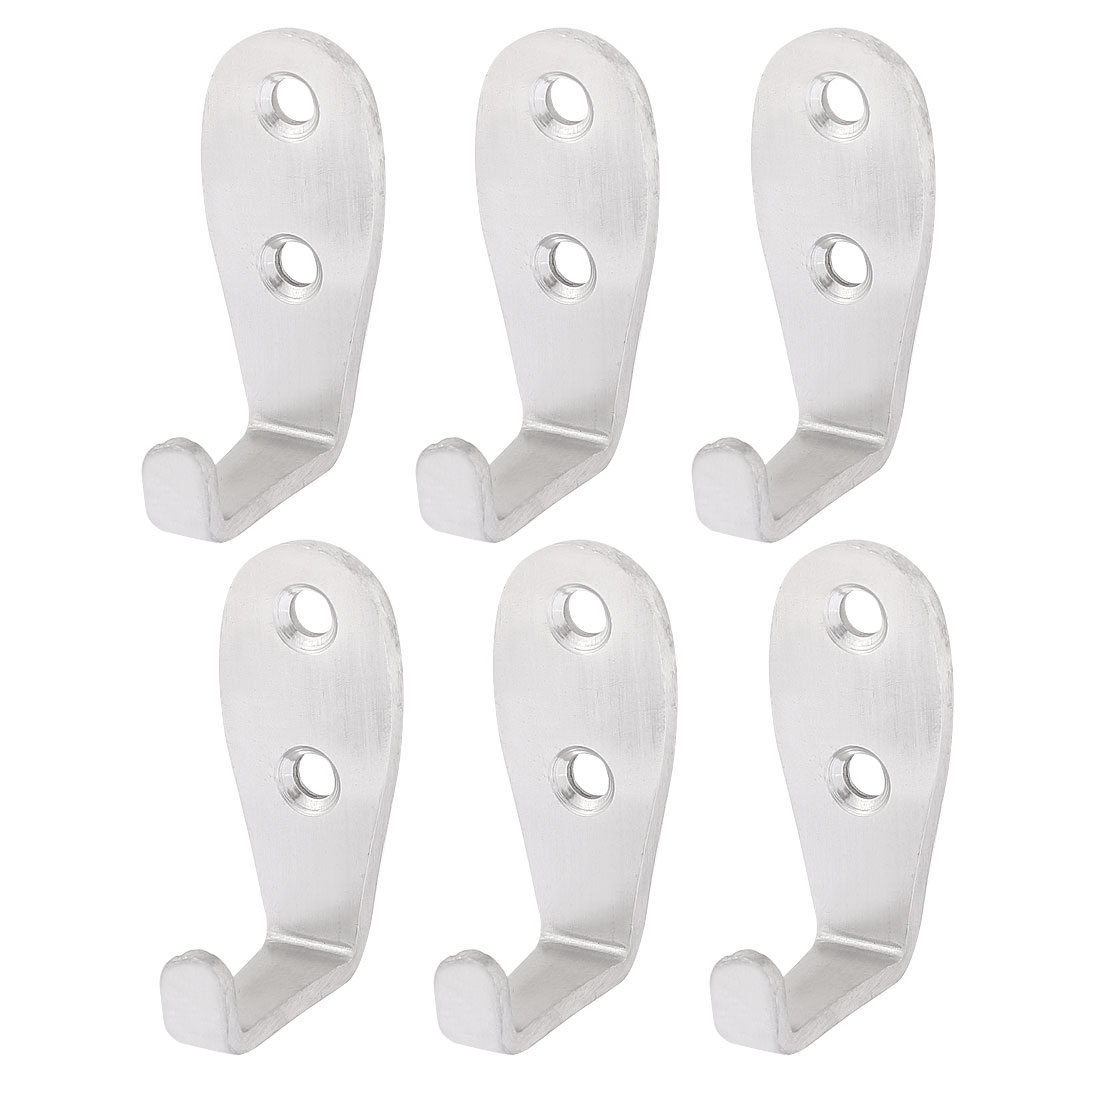 Home Bathroom Stainless Steel Wall Mounted Coat Hook Hanger Holder 6pcs